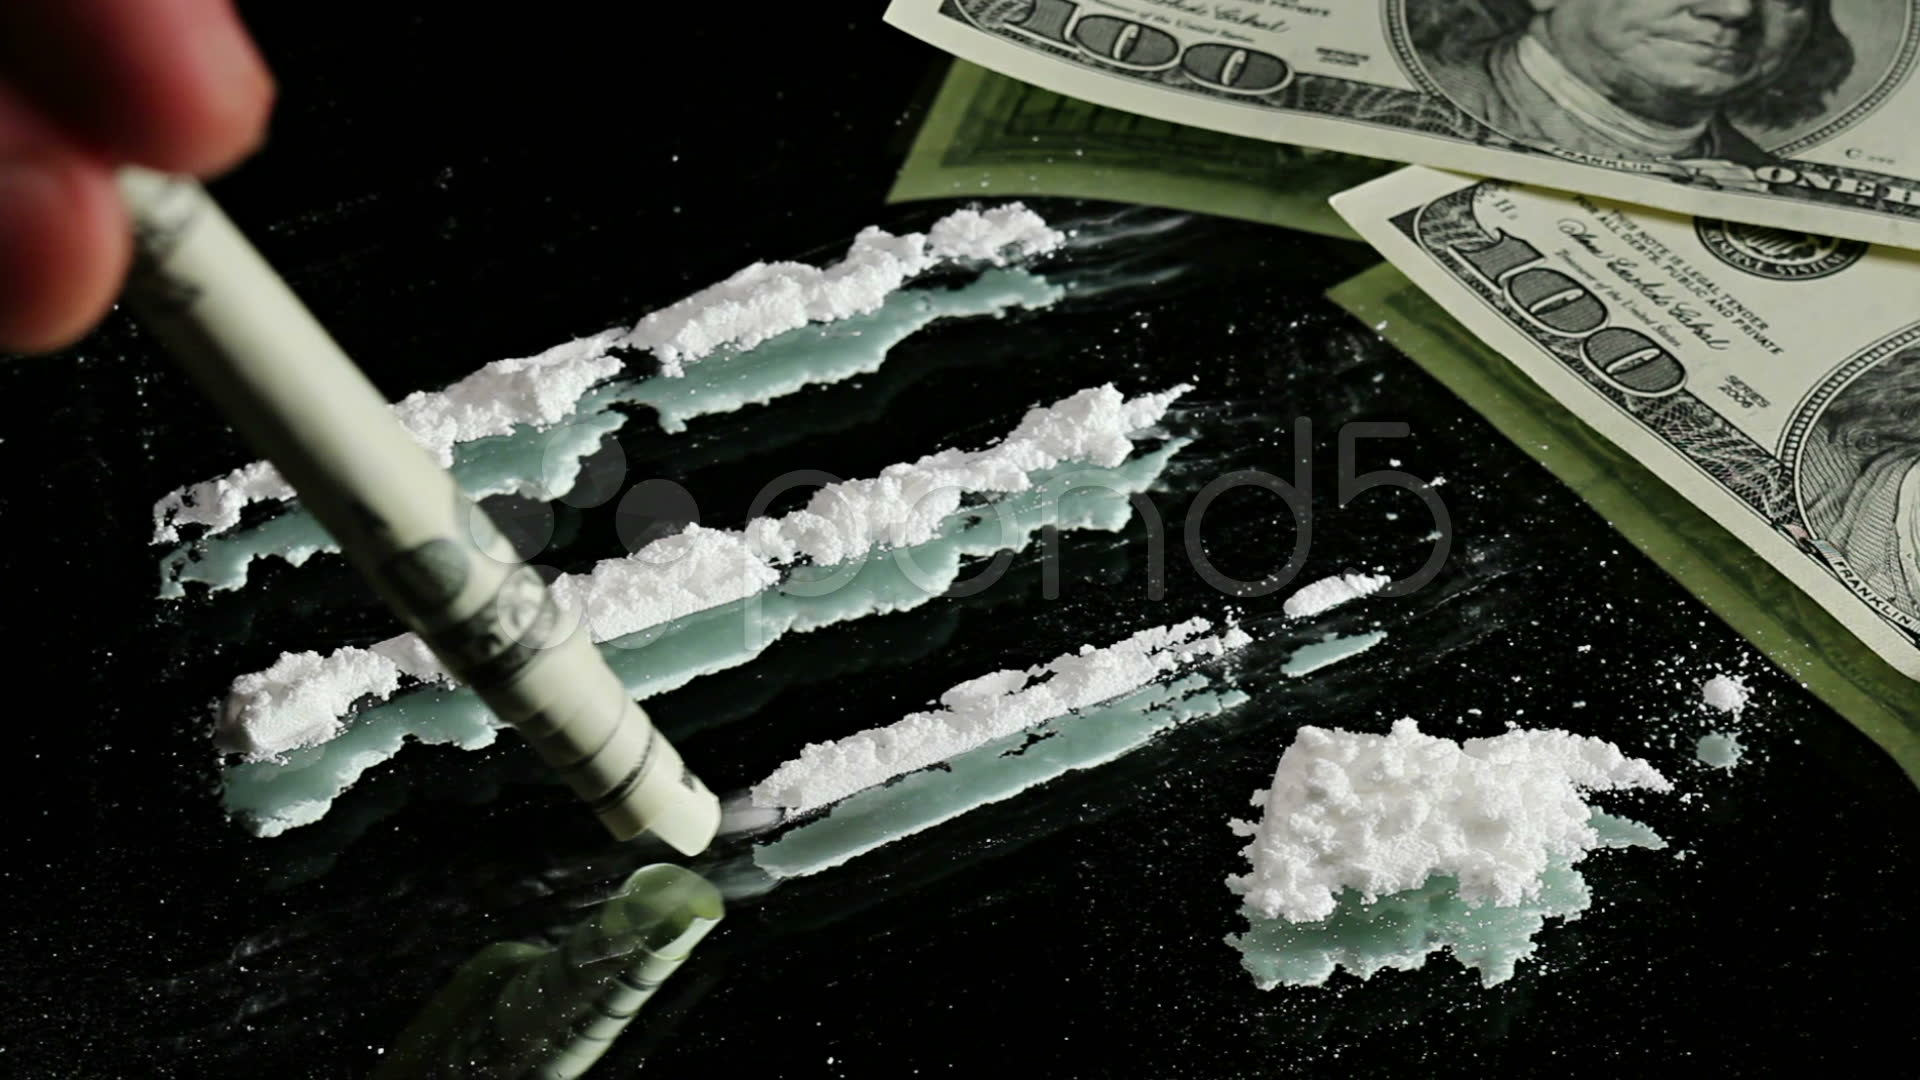 Cocaine Wallpaper HD 1920x1080